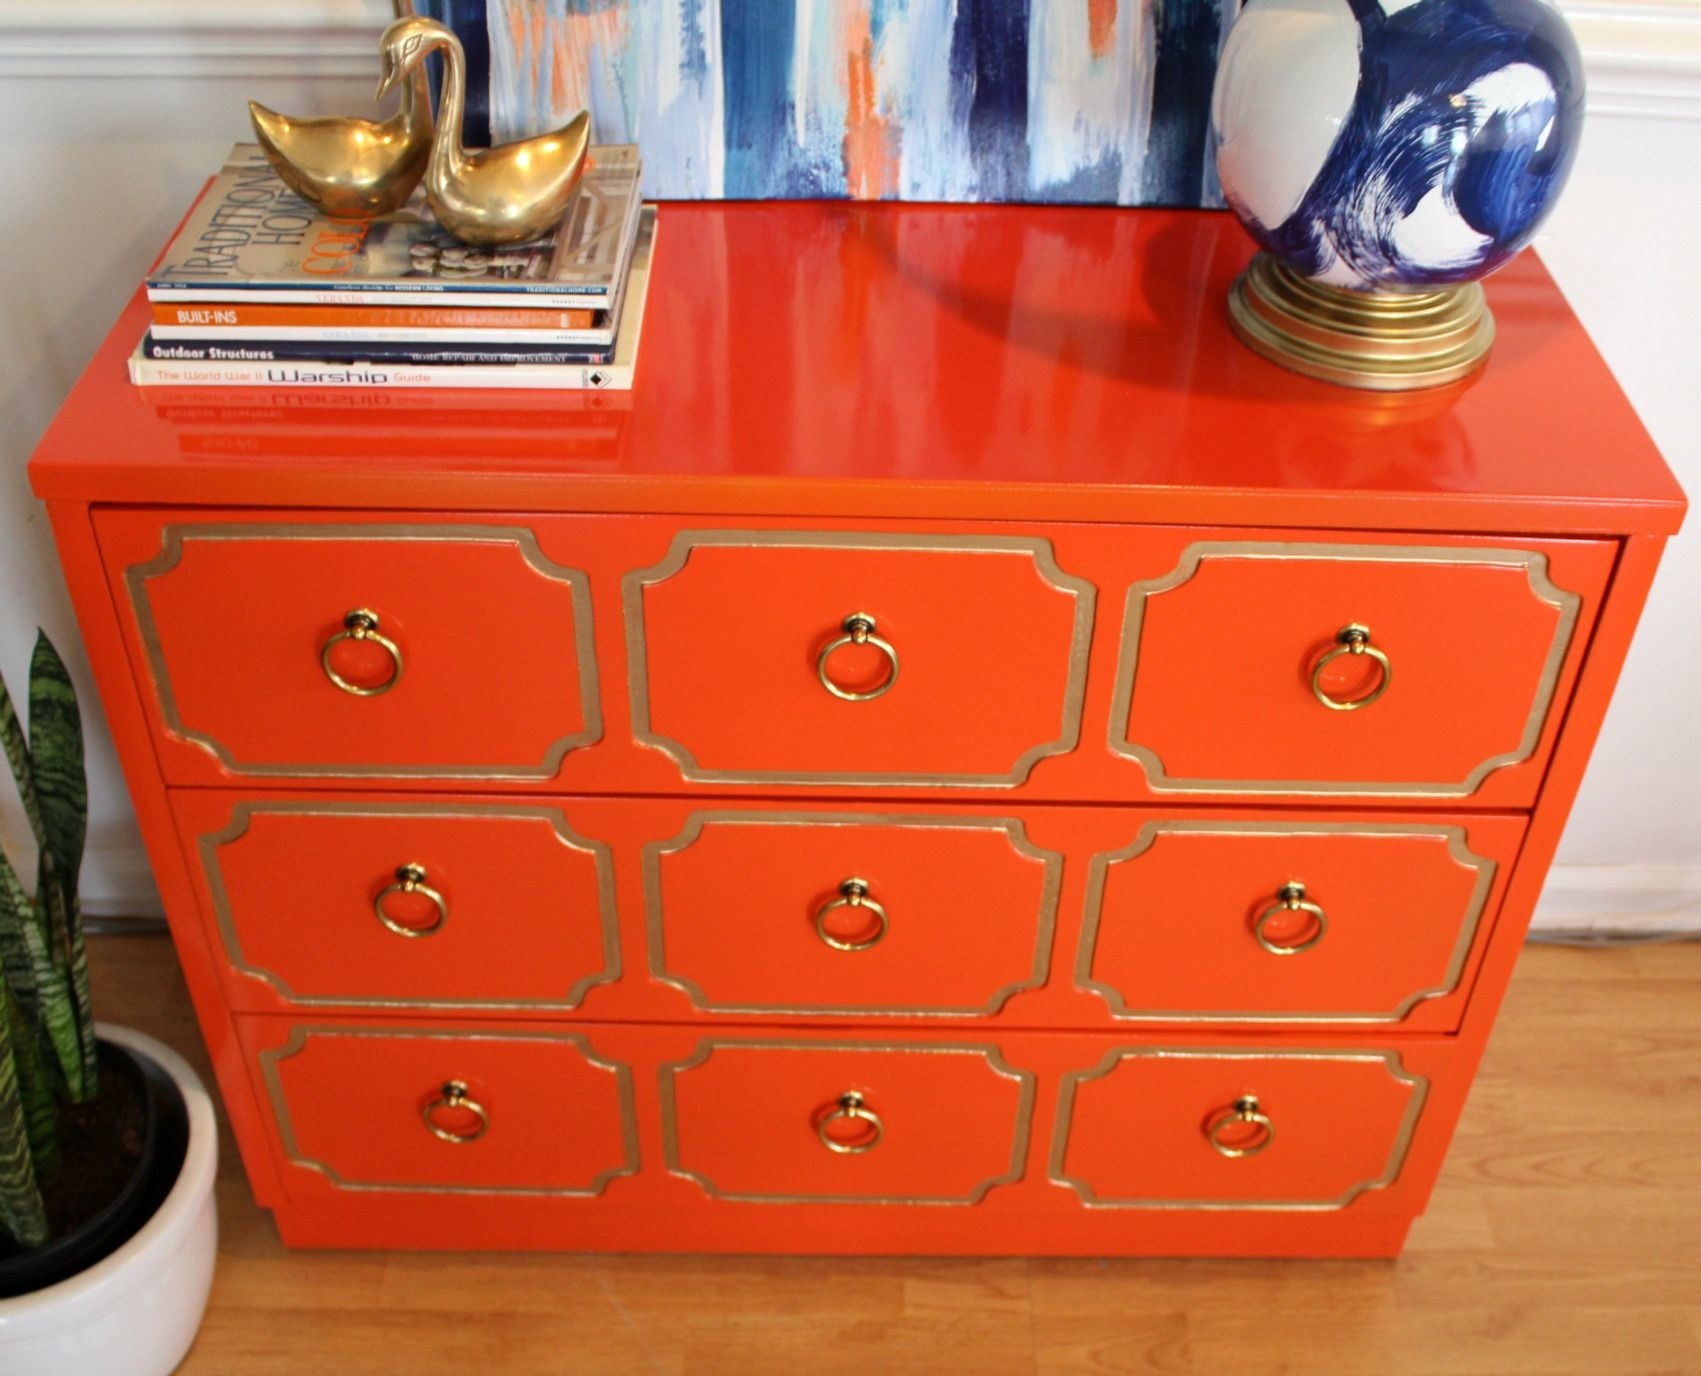 red lacquered furniture. vintagemoderneclectic welcome to my shop here you will find vintage furniture i have refinished using a high gloss lacquer like fini red lacquered